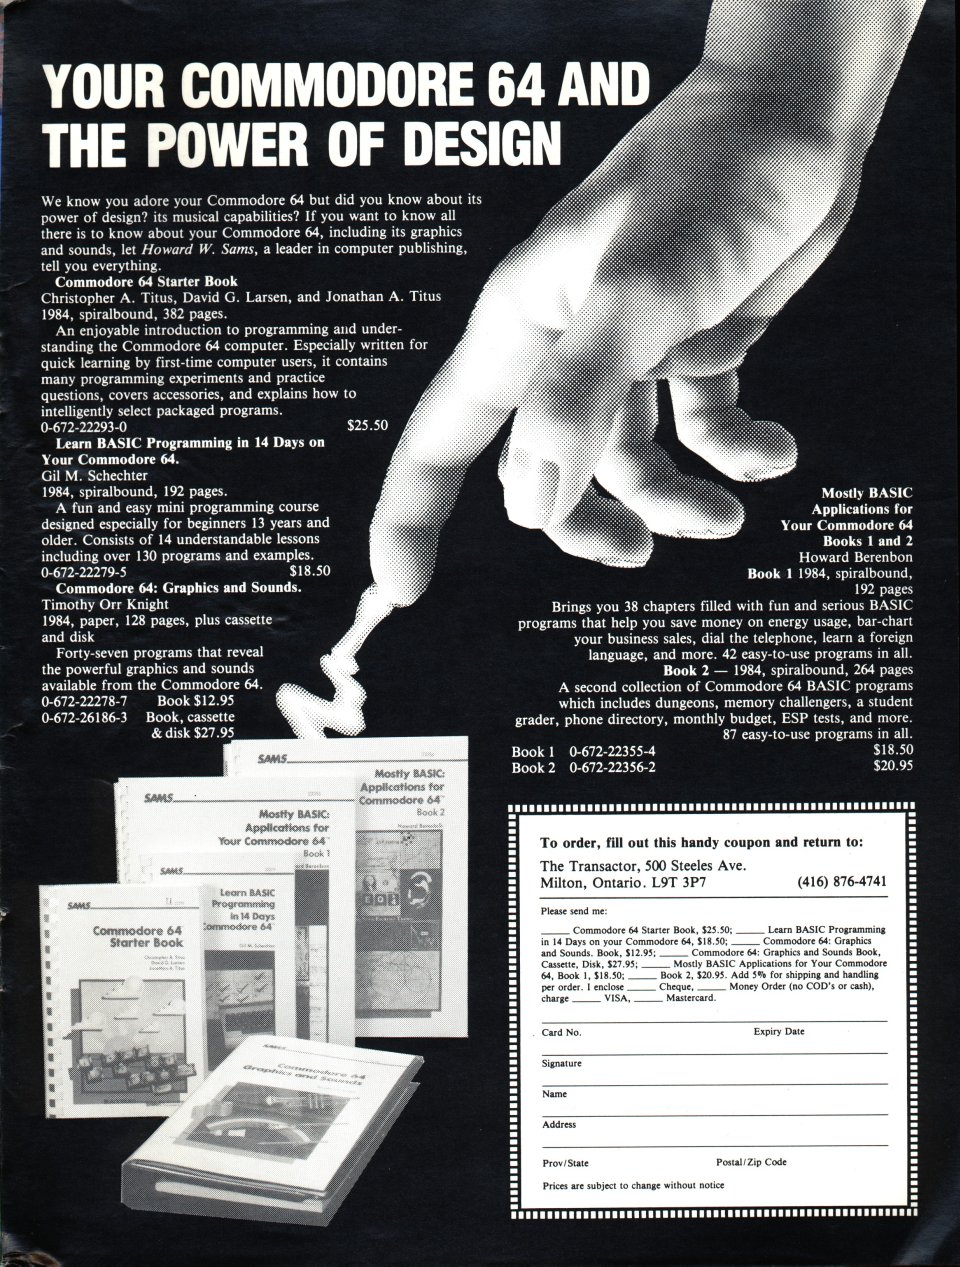 [Advertisement: Your Commodore 64 and the Power of Design]